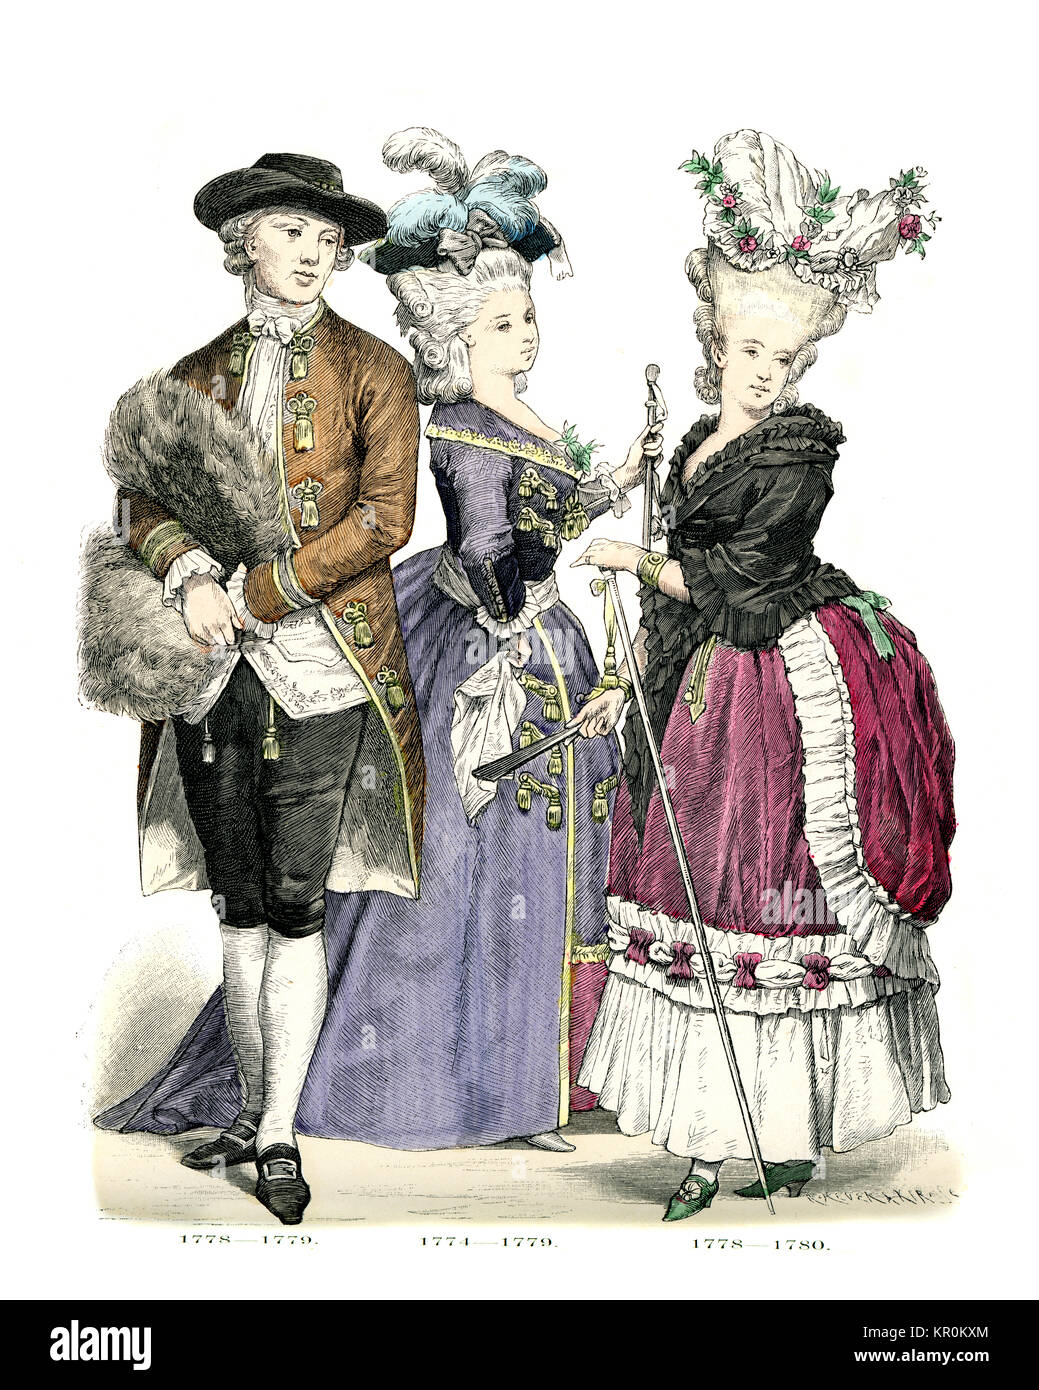 History of Fashion, Costumes of French men and women of the late 18th Century - Stock Image